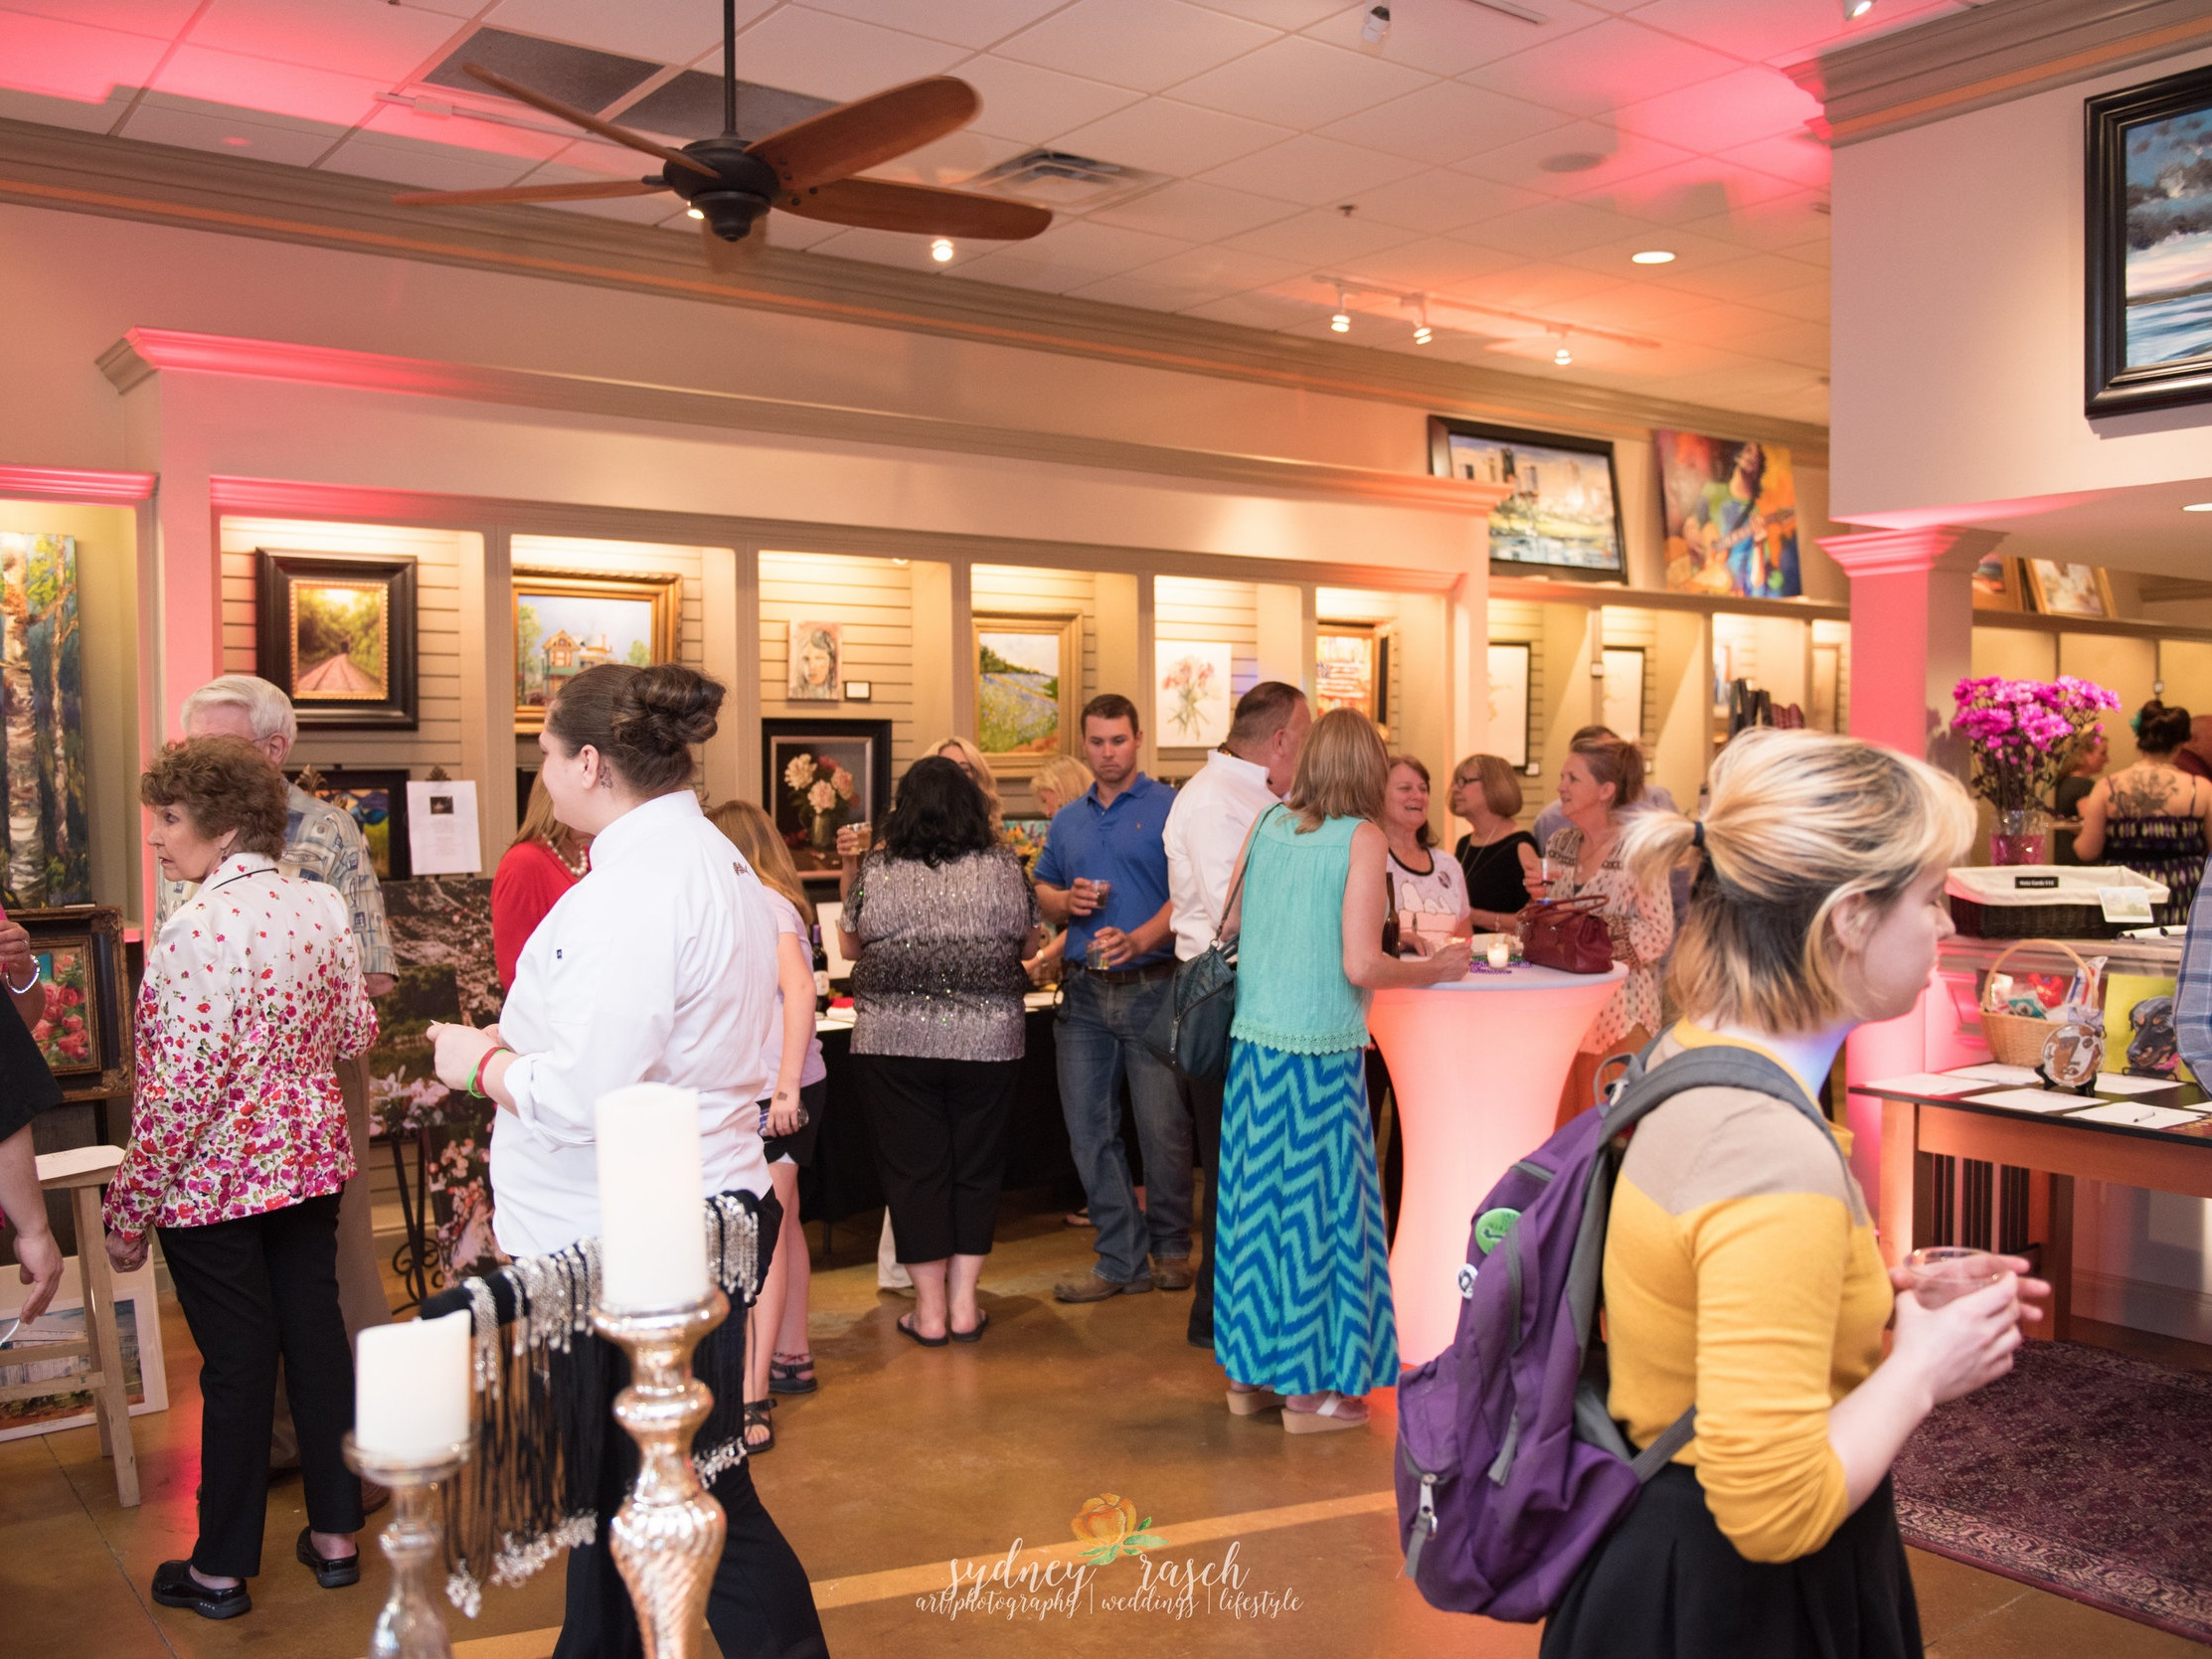 The Bark show at The Art Group Gallery for the nonprofit, Southern Paws Transport. Photo by Art/Photography by Sydney Rasch.